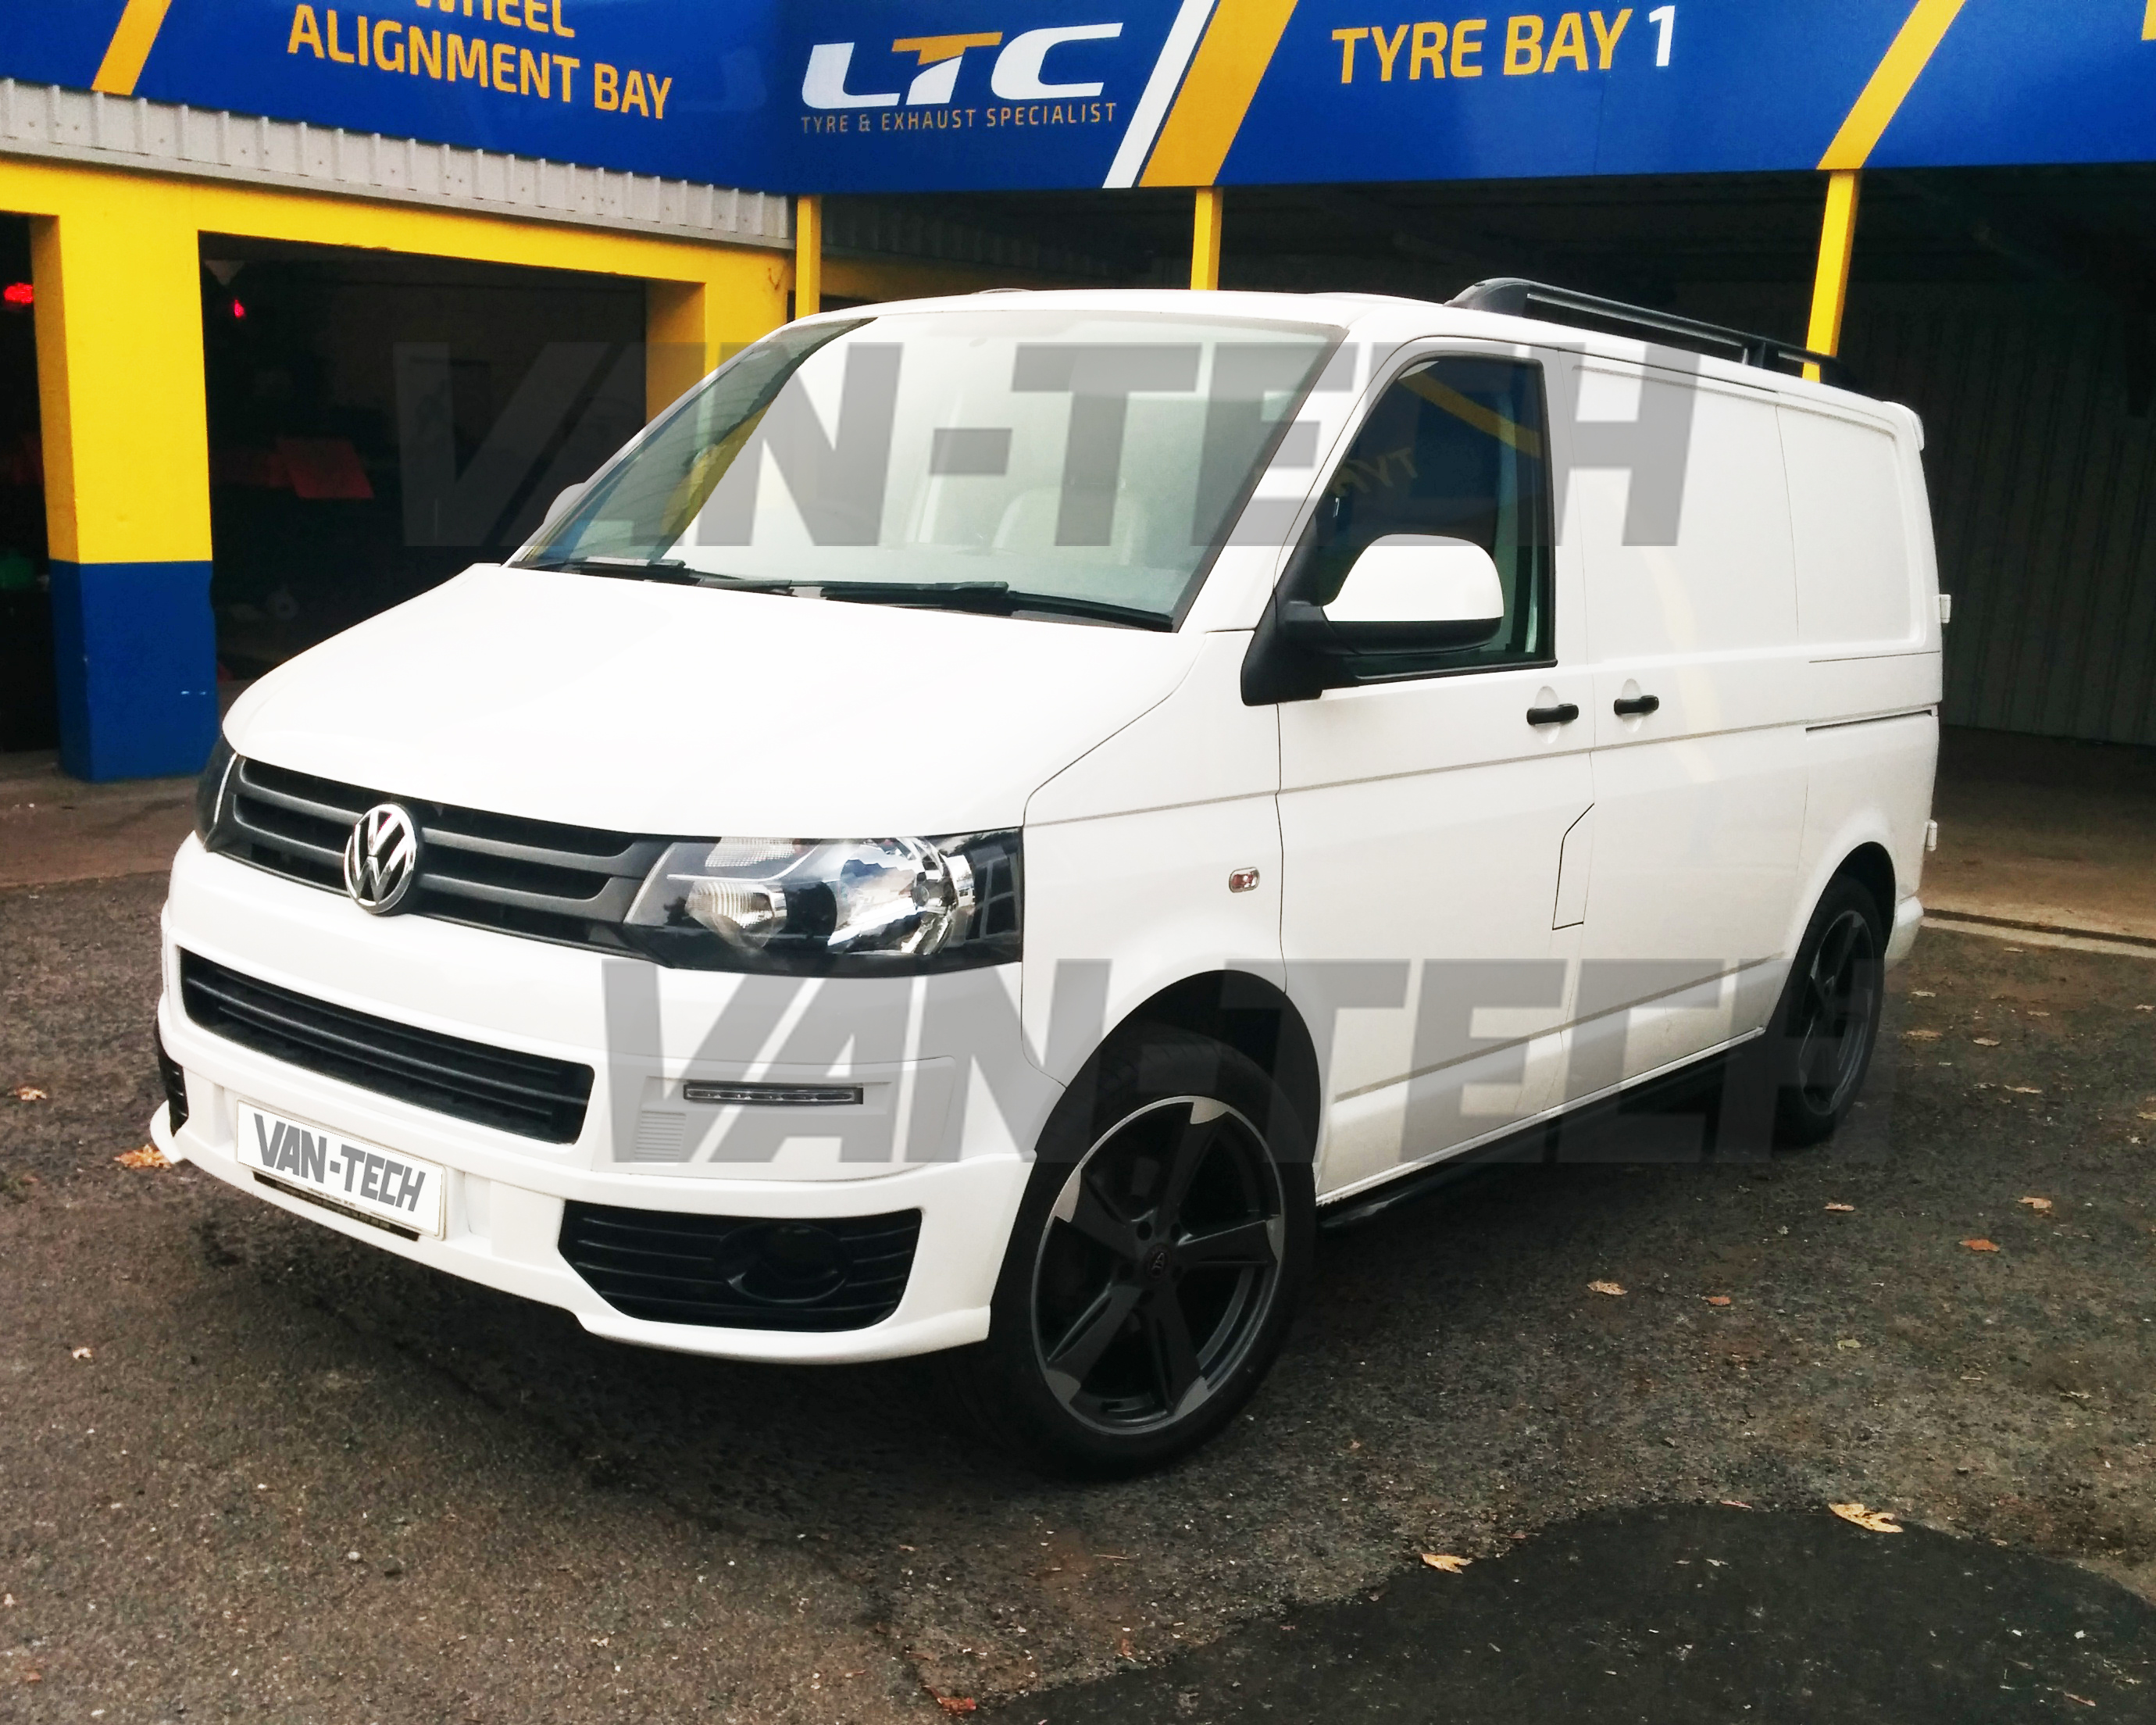 sold volkswagen transporter t5 van white 2013 2 0 swb van tech. Black Bedroom Furniture Sets. Home Design Ideas